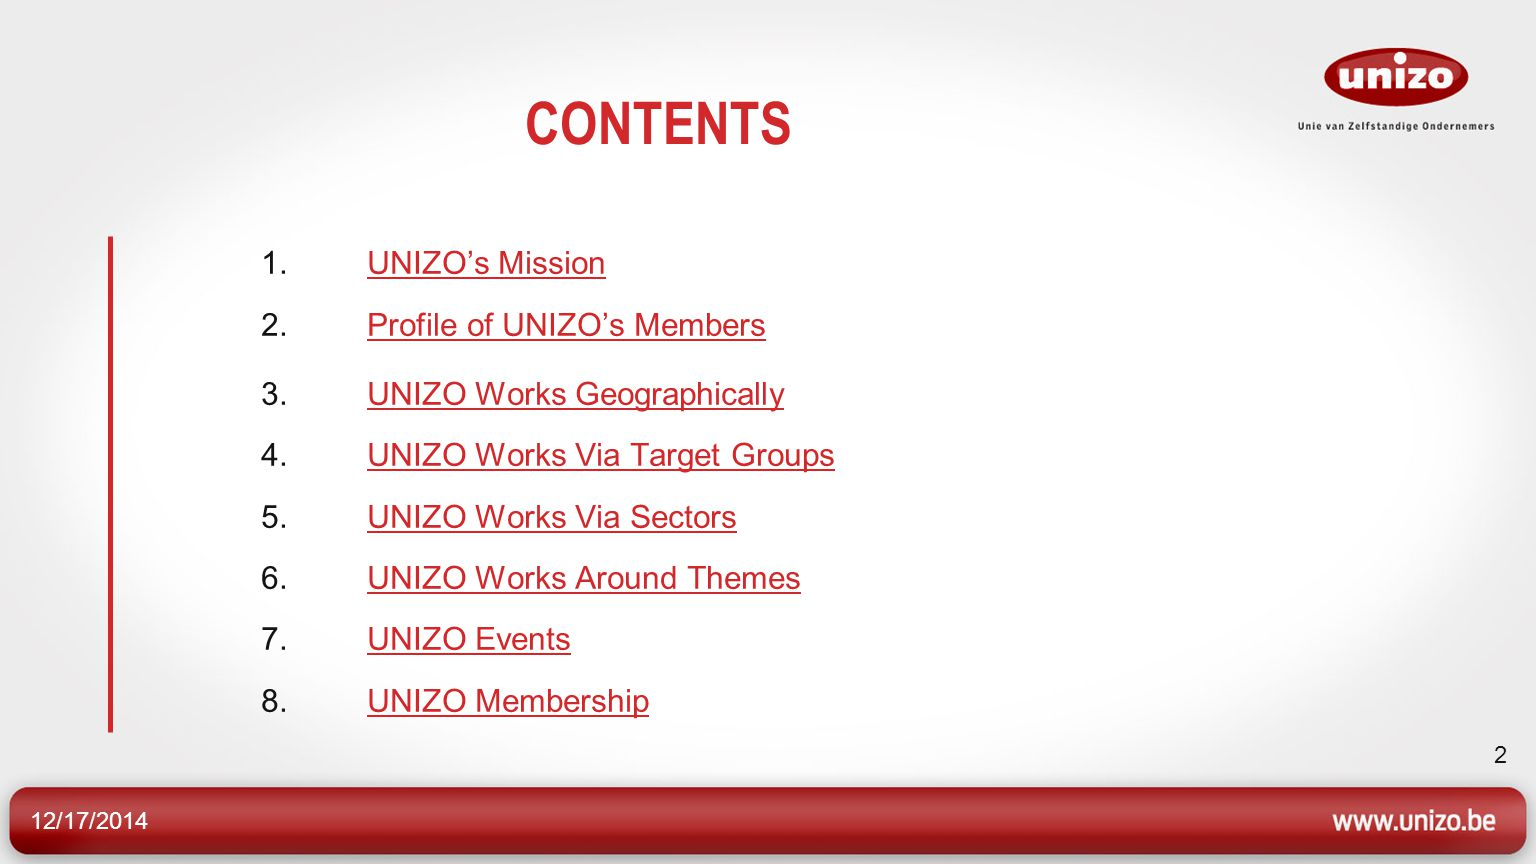 12/17/2014 2 CONTENTS 1.UNIZO's Mission 2.Profile of UNIZO's MembersUNIZO's MissionProfile of UNIZO's Members 3.UNIZO Works Geographically 4.UNIZO Works Via Target Groups 5.UNIZO Works Via Sectors 6.UNIZO Works Around Themes 7.UNIZO Events 8.UNIZO MembershipUNIZO Works GeographicallyUNIZO Works Via Target GroupsUNIZO Works Via SectorsUNIZO Works Around ThemesUNIZO EventsUNIZO Membership